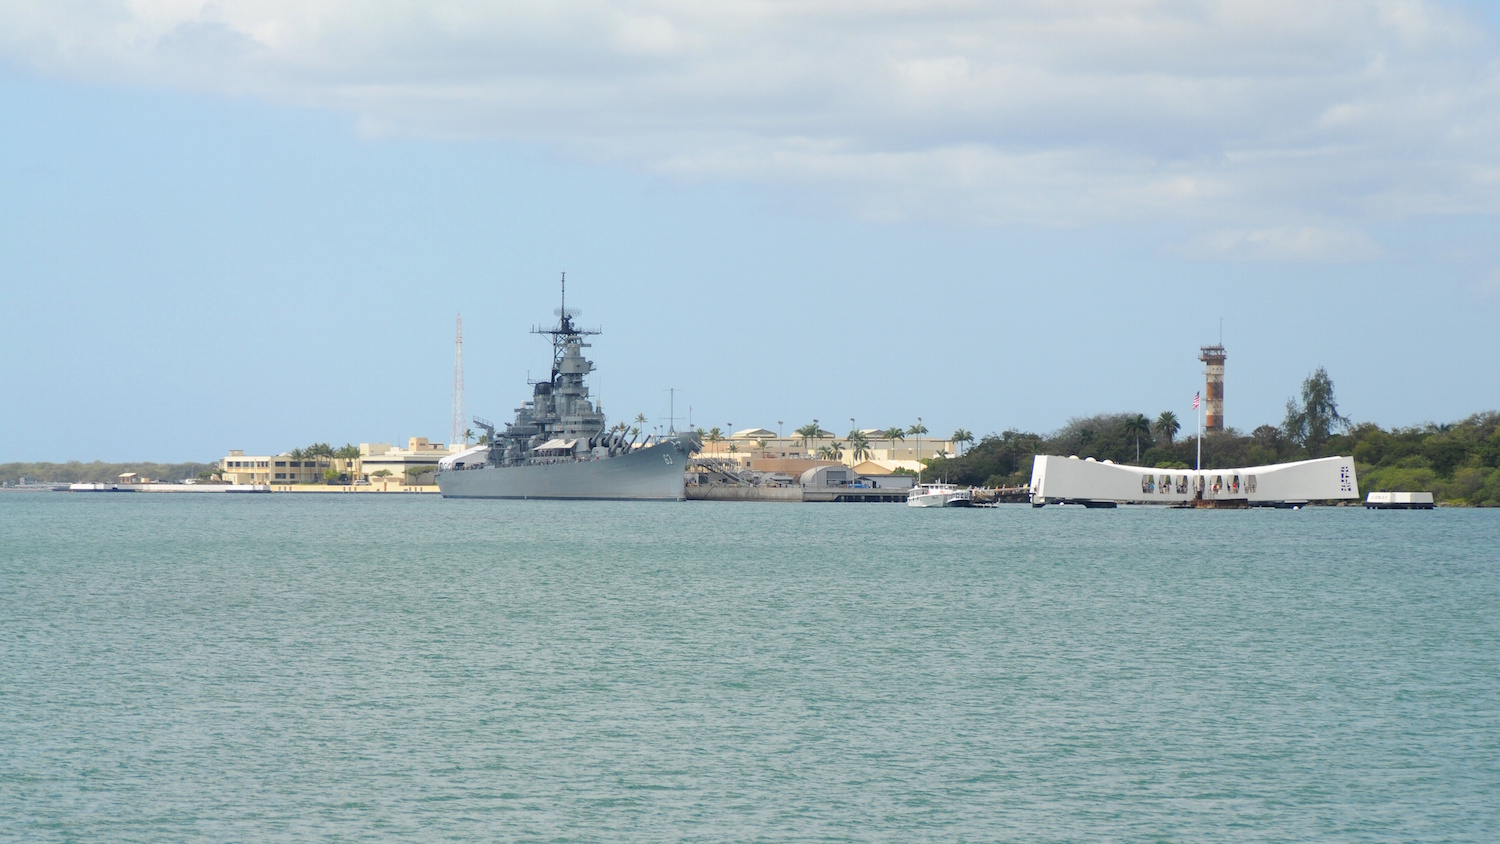 an analysis of the uss arizona in world war two Uss arizona memorial: world war ii history - see 22,158 traveler reviews, 7,448 candid photos, and great deals for honolulu, hi, at tripadvisor.